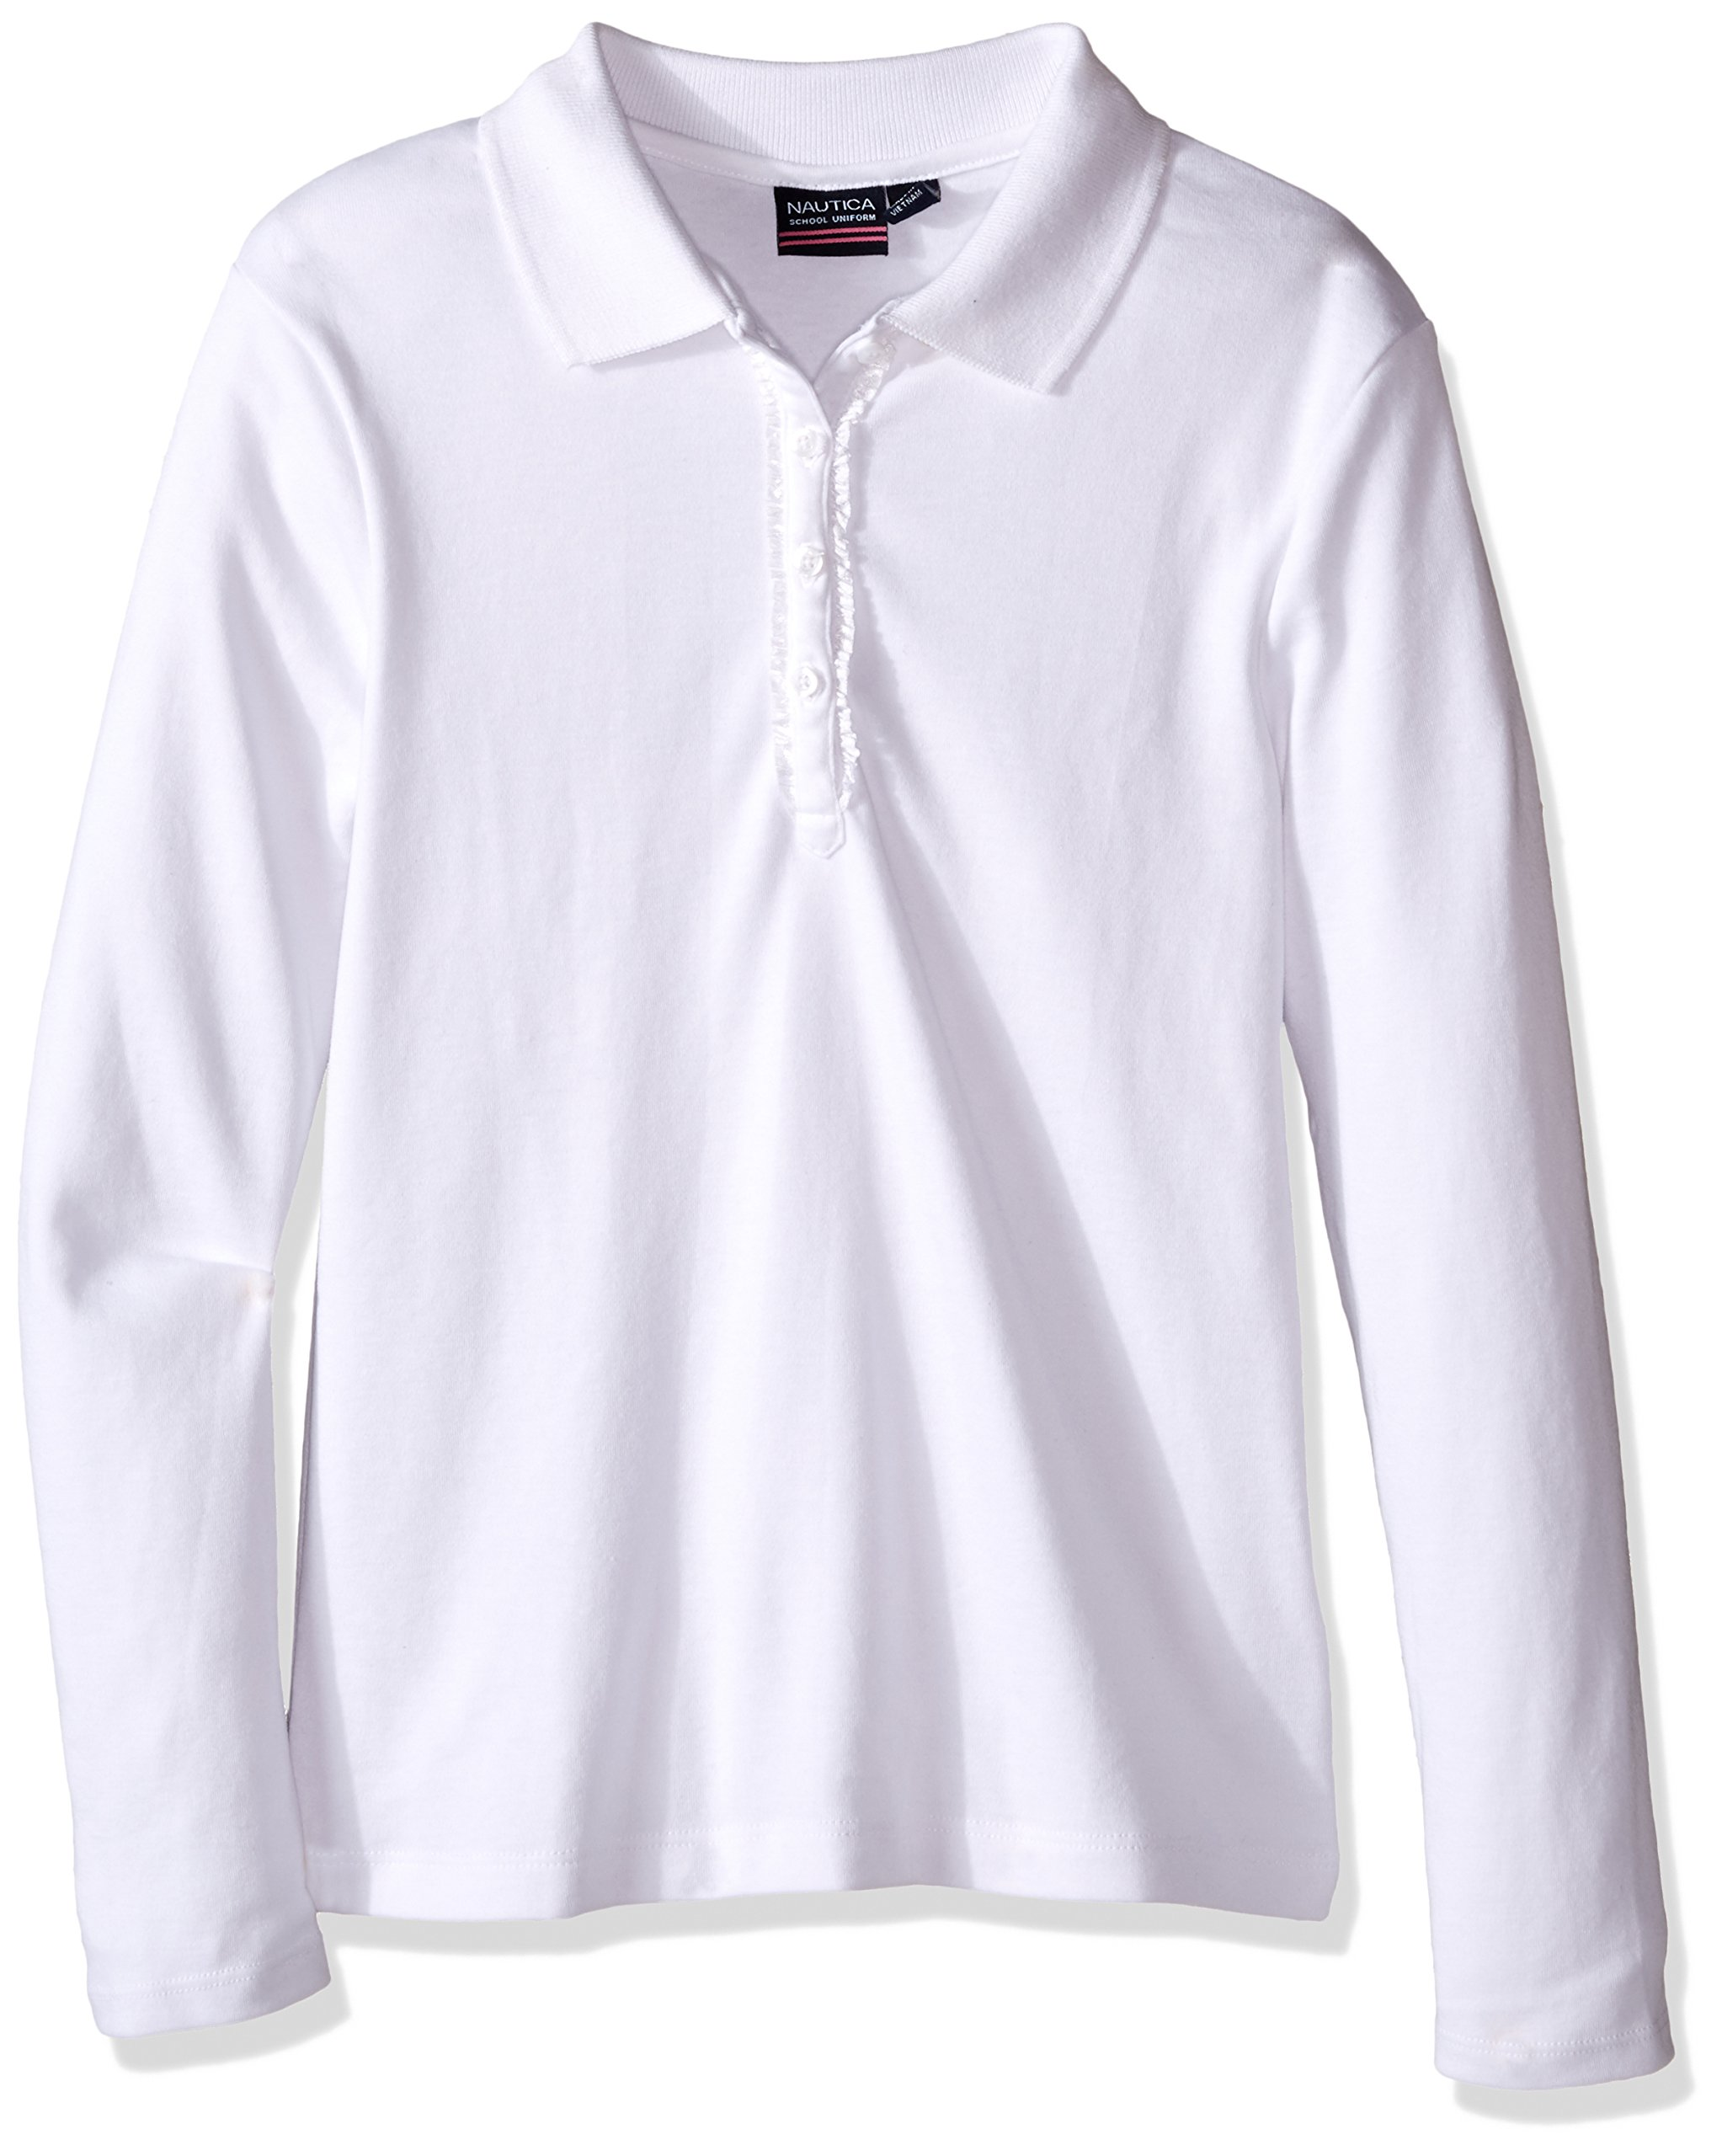 Nautica Girls' Uniform Long Sleeve Polo with Ruffle Placket product image